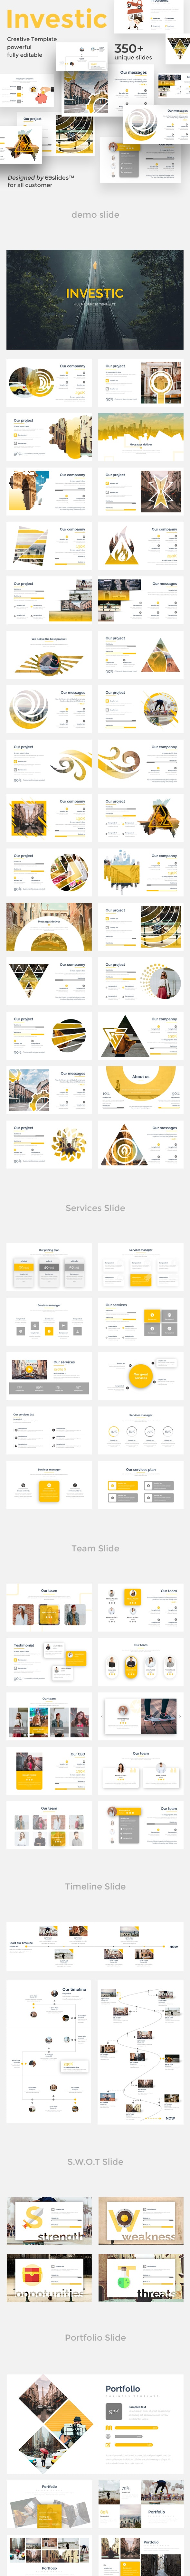 Investic Pitch Deck Powerpoint Template - Creative PowerPoint Templates